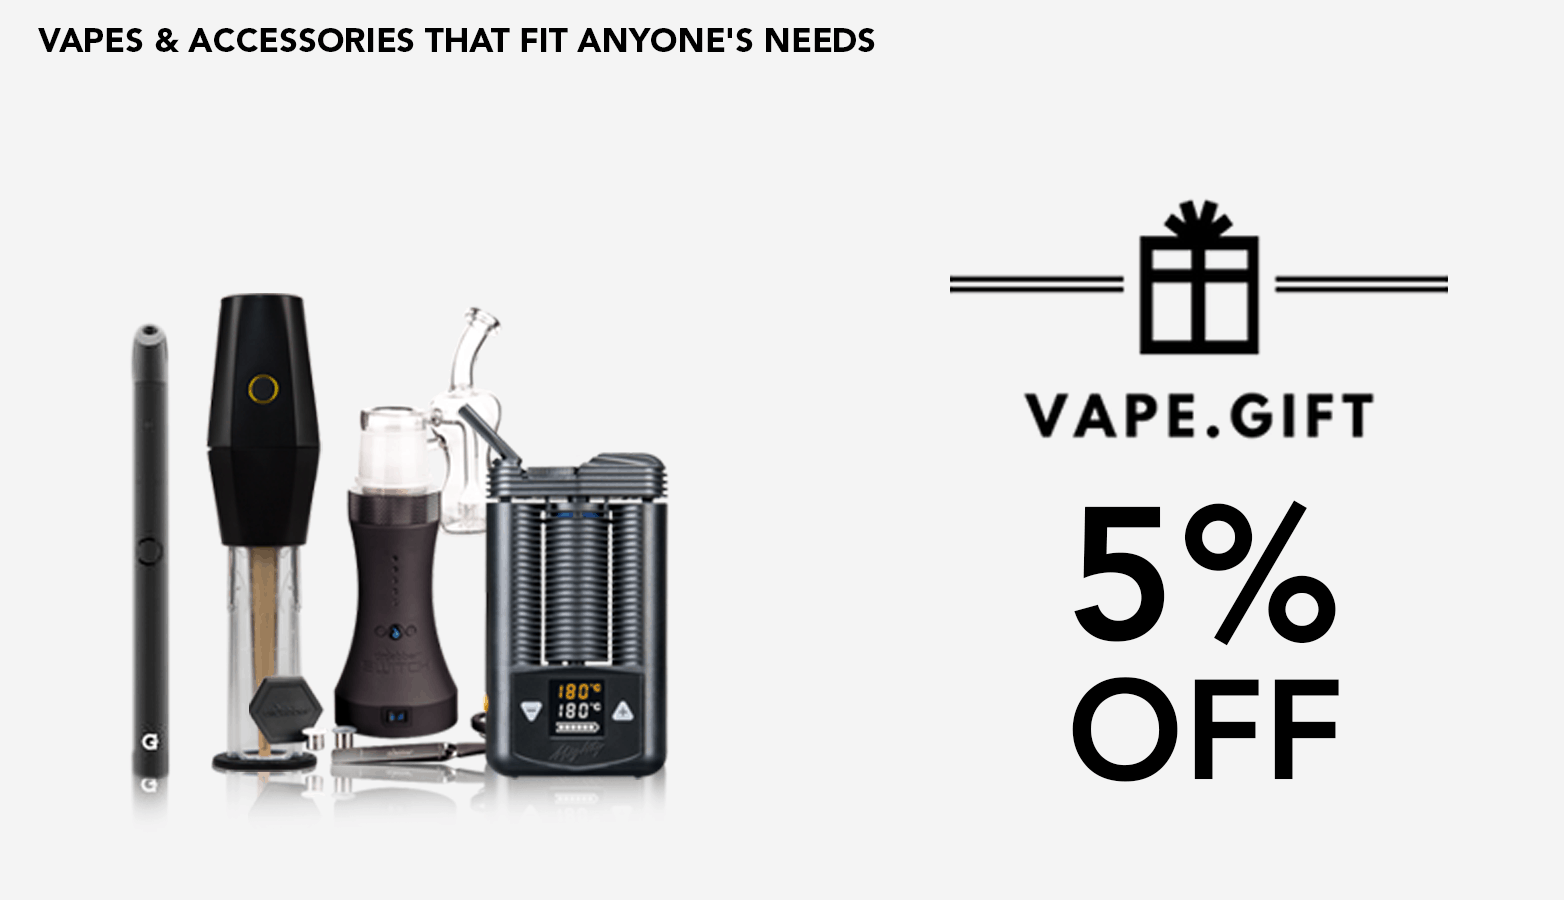 VapeGift Coupon Code discounts promos save on cannabis online Website Redesign